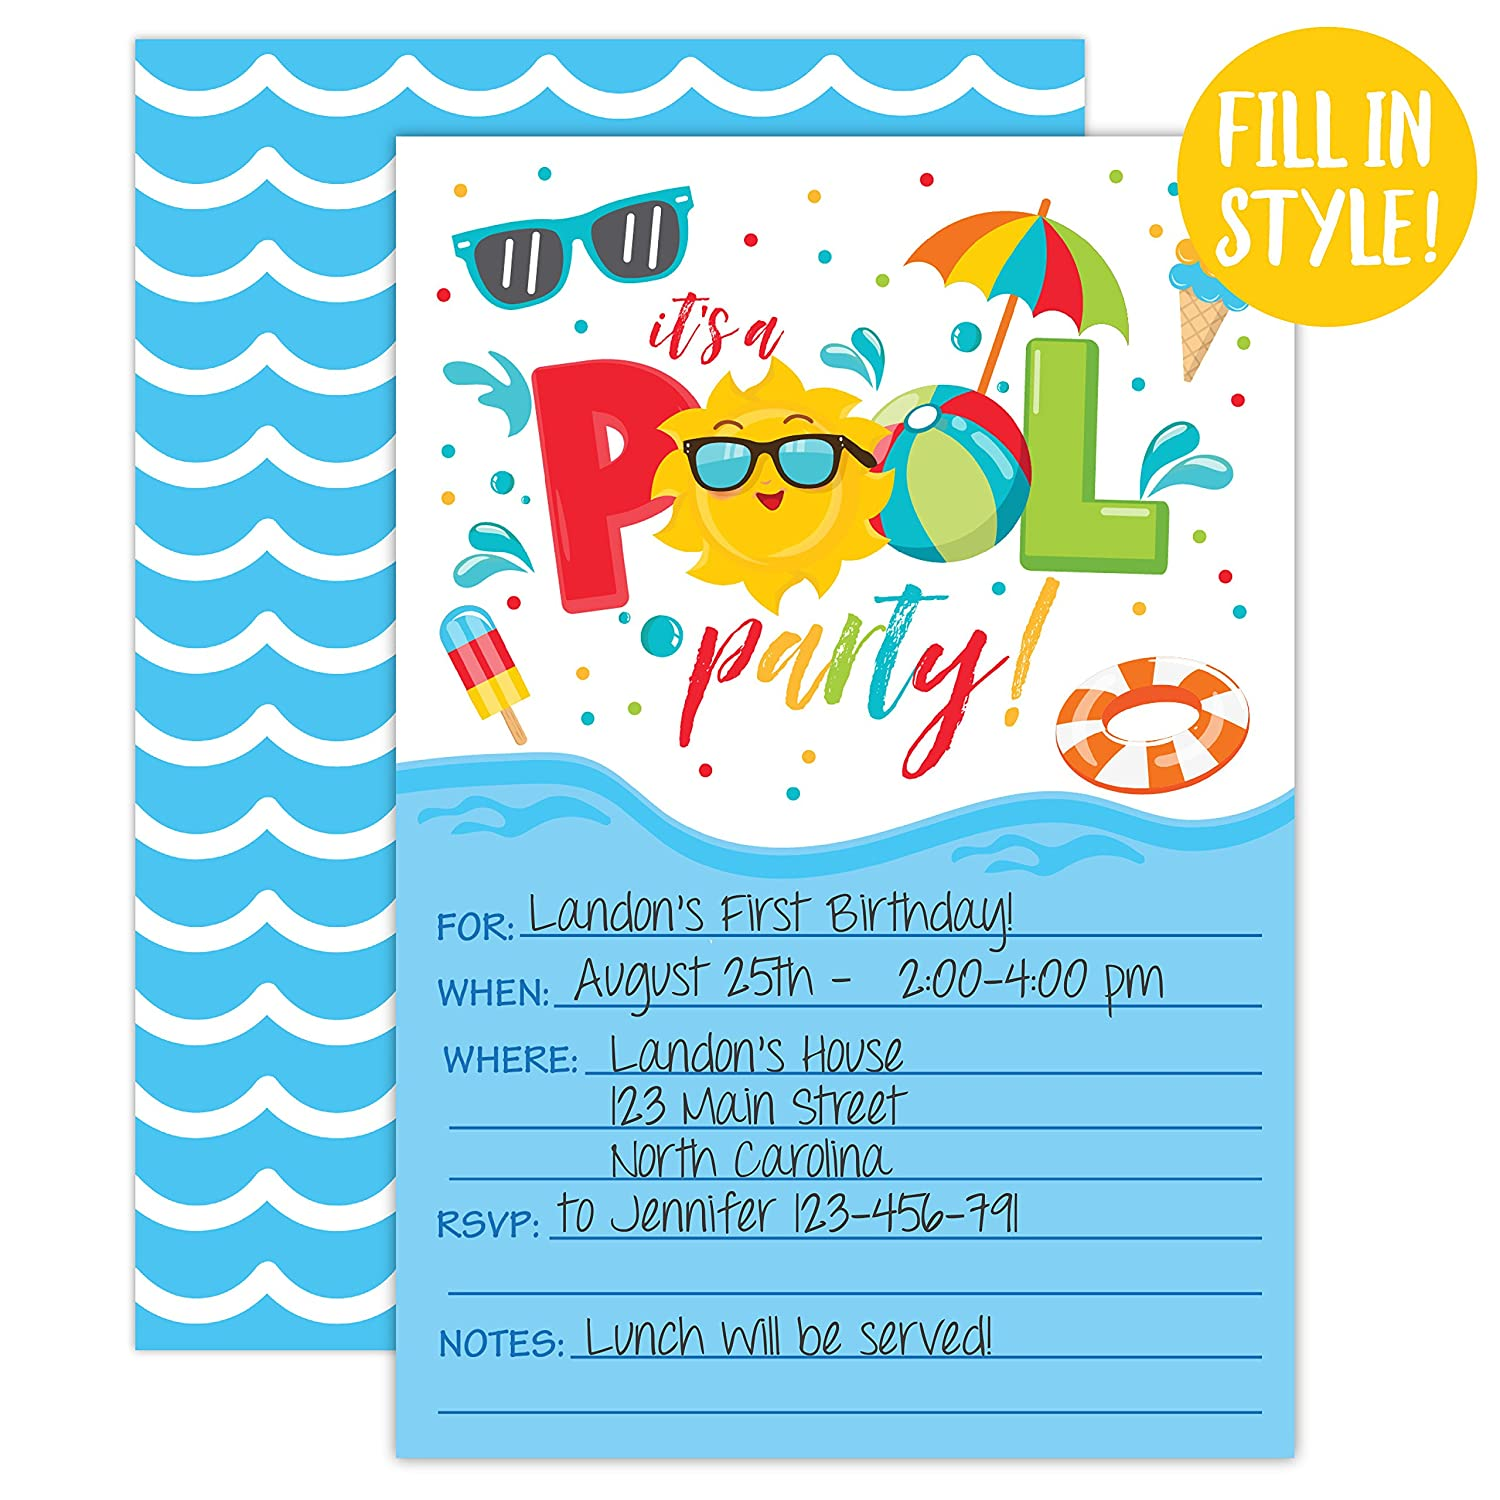 Buy Your Main Event Prints Boy Pool Party Birthday Invitations, Summer Bash, Splash Pad, Water Park Invites, 20 Fill In Invitations With Envelopes Online at ...